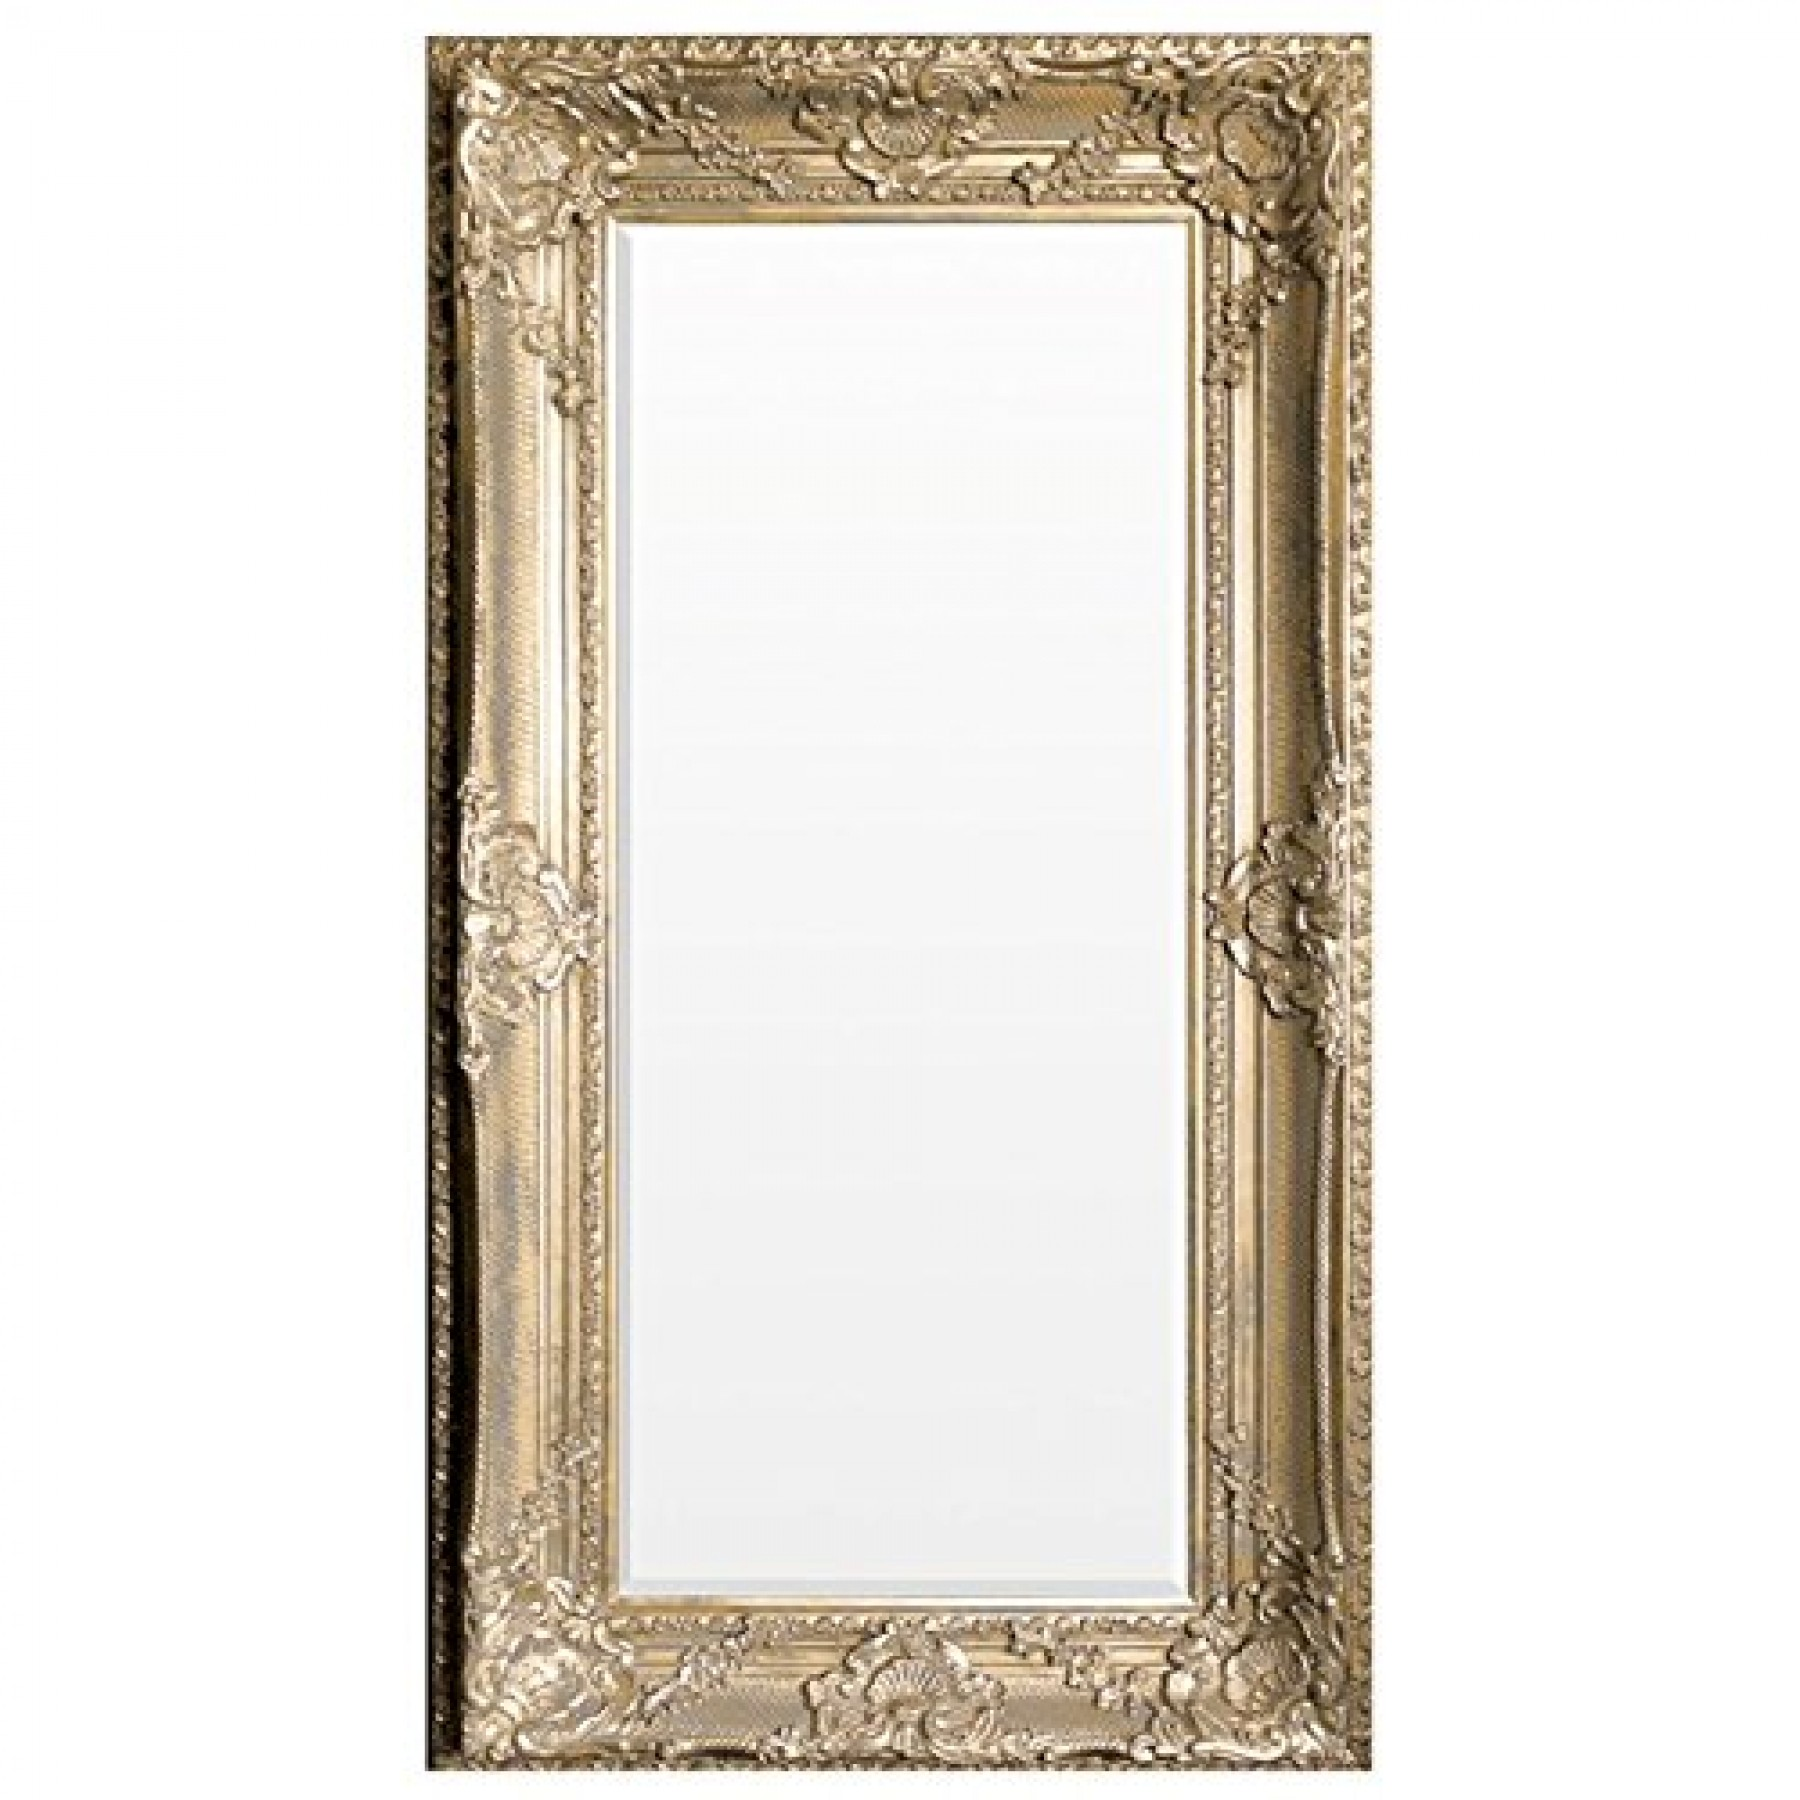 Gold Ornate Shabby Chic Mirror Extra Large